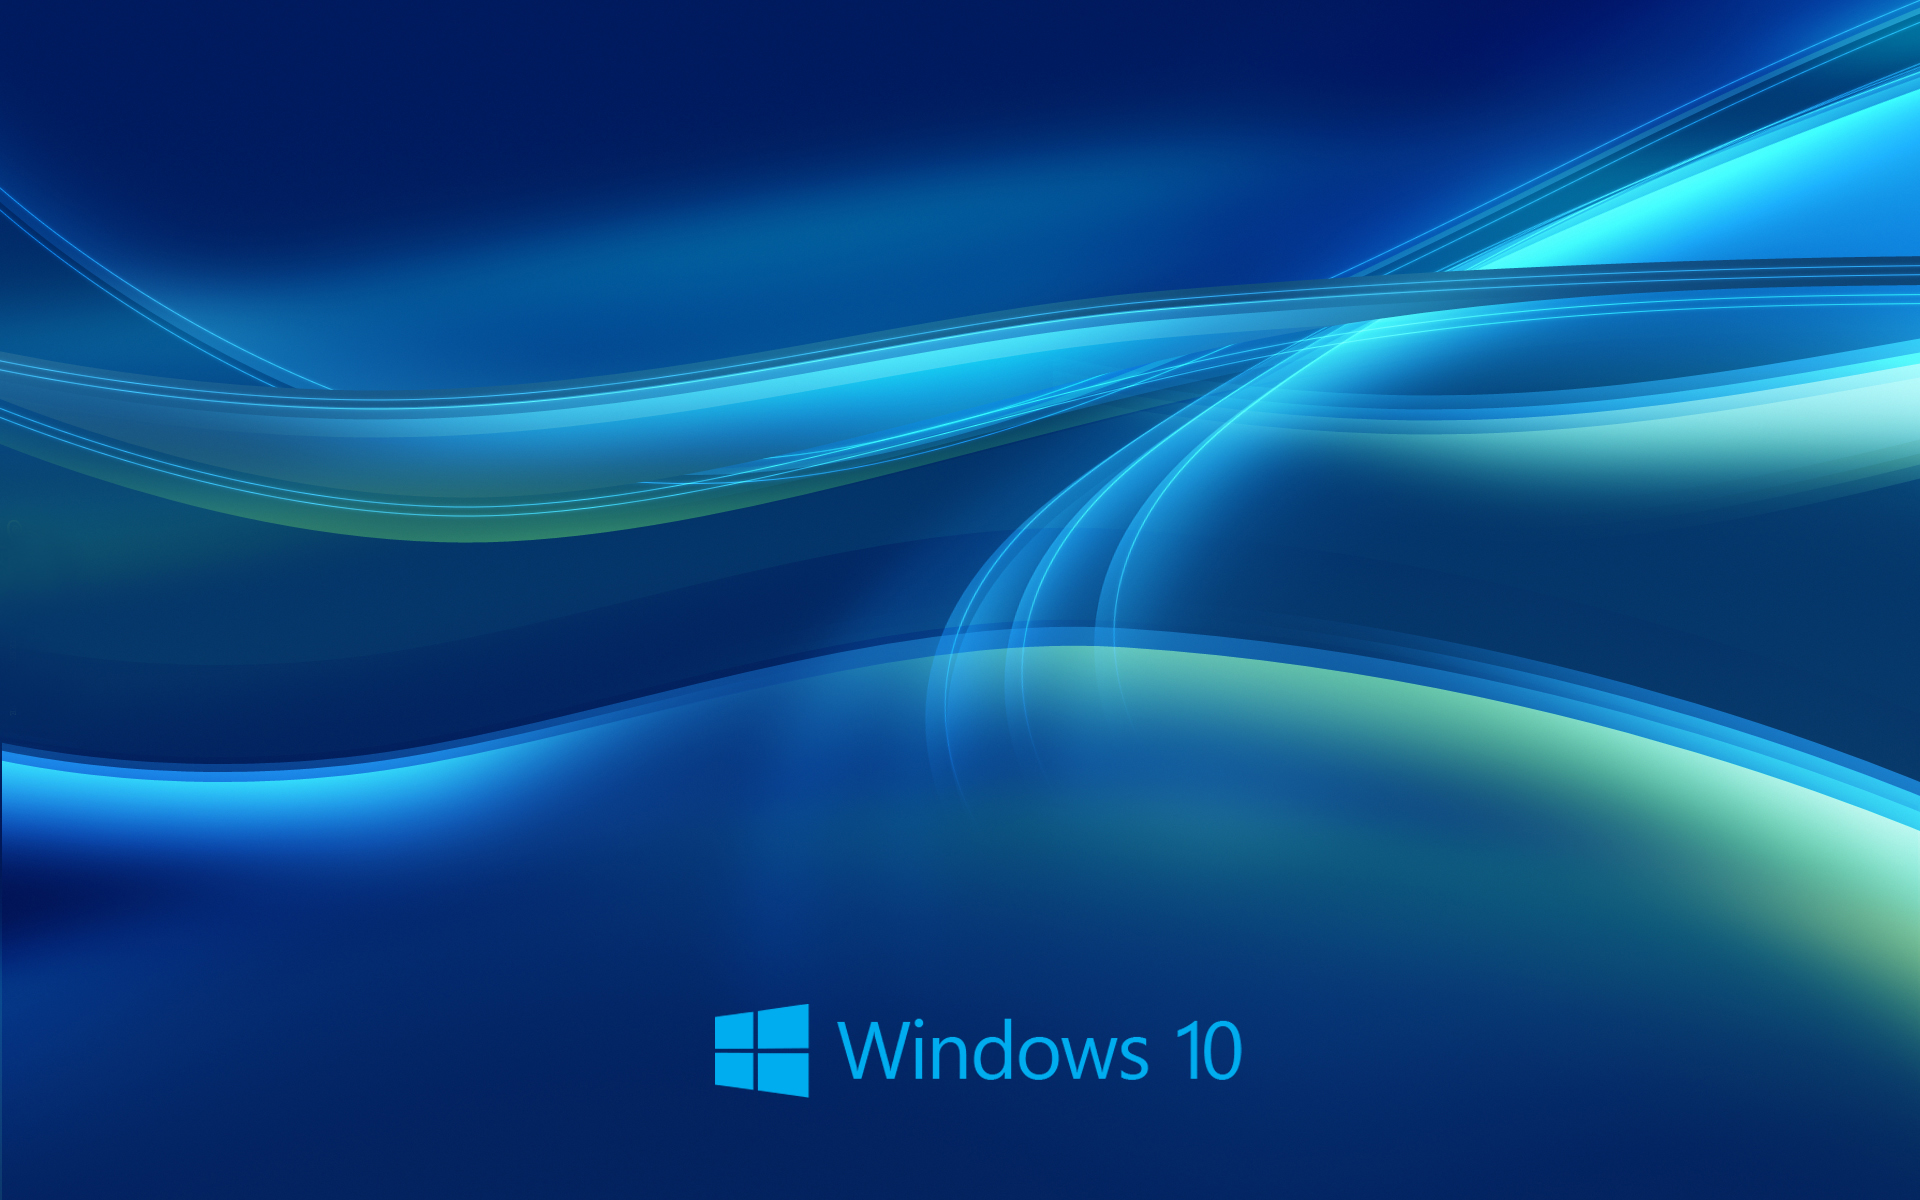 Windows 8 Hd 3d Wallpapers